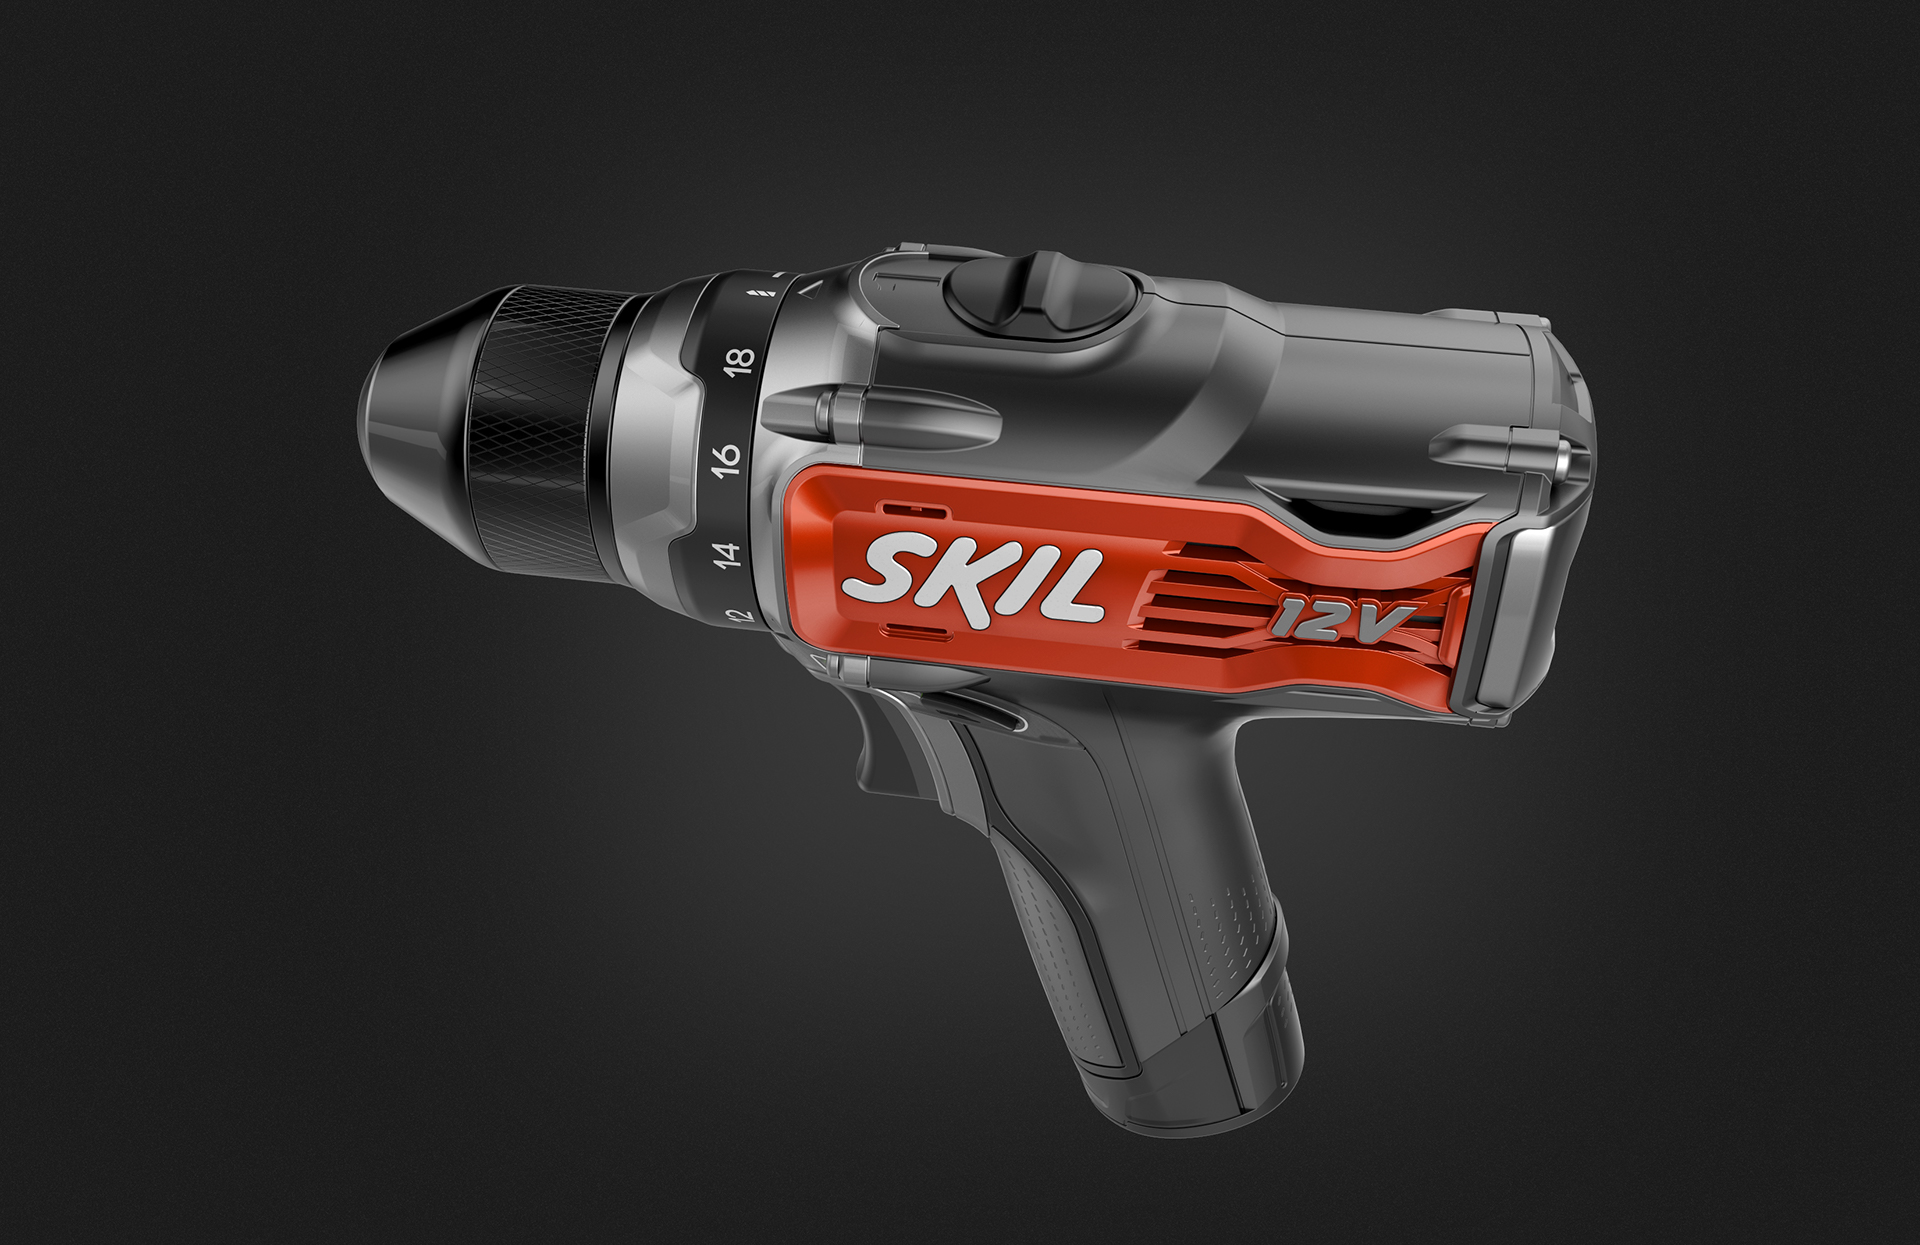 Skil Power Drill